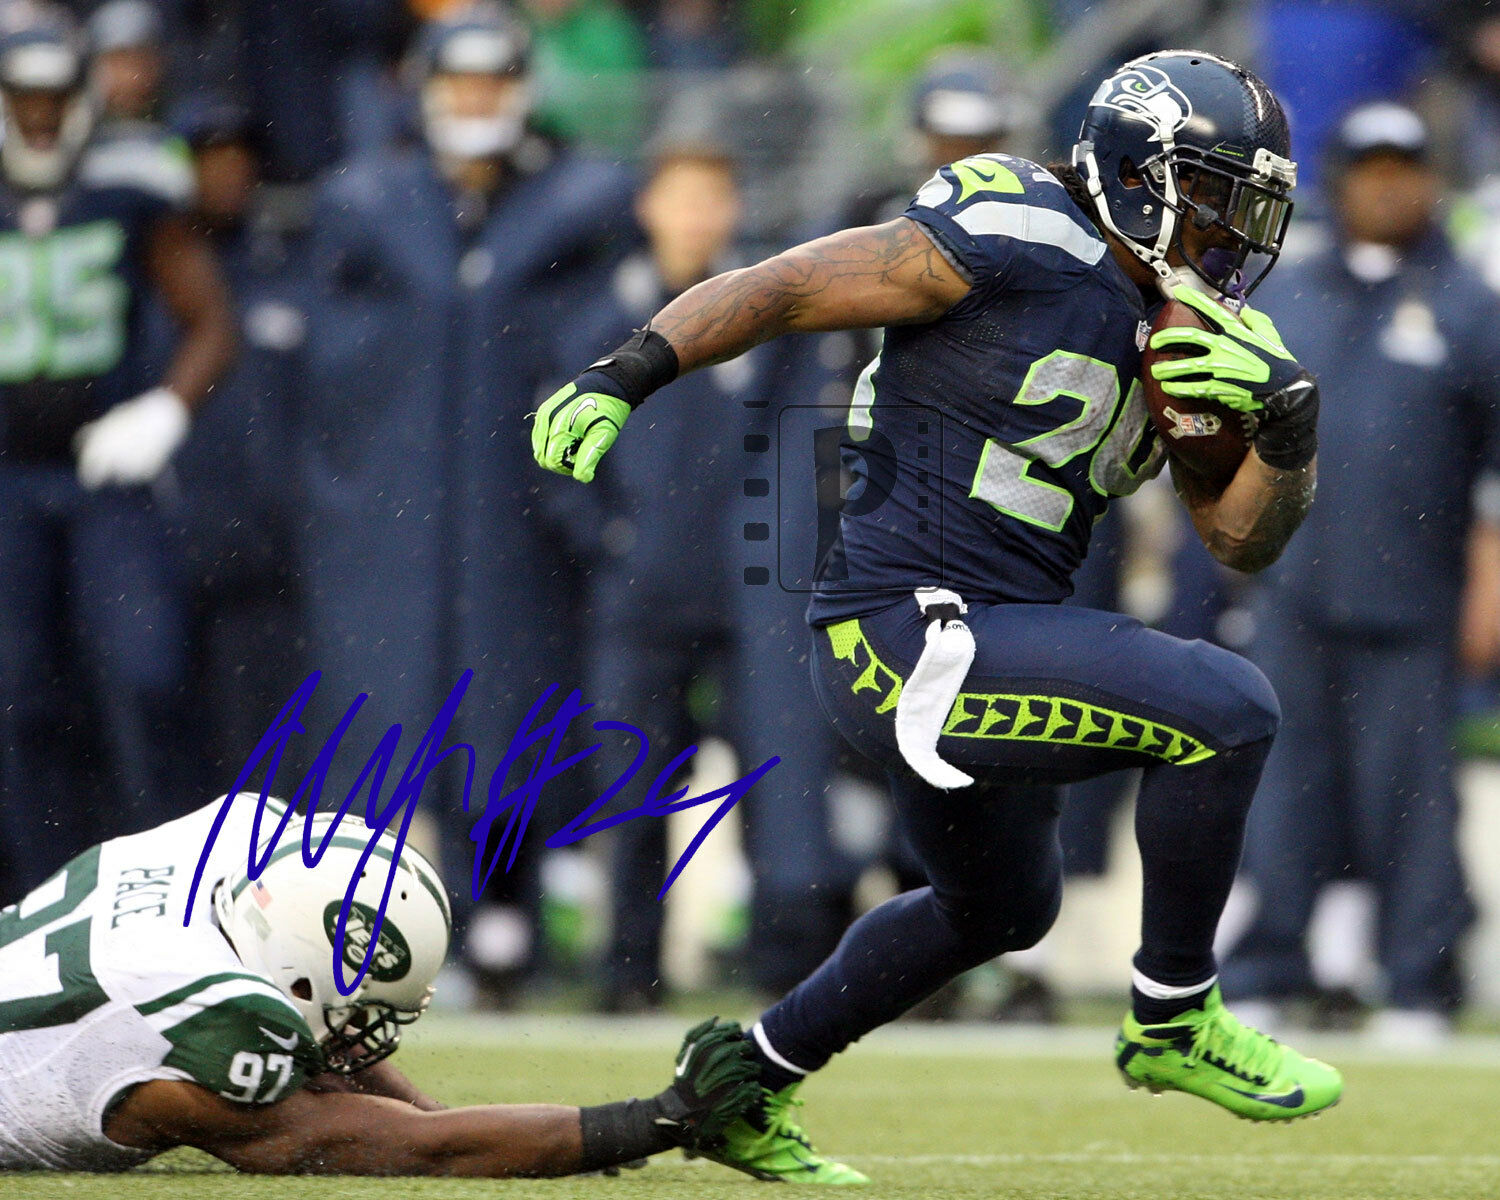 Marshawn lynch signed photo E-mails from an Asshole